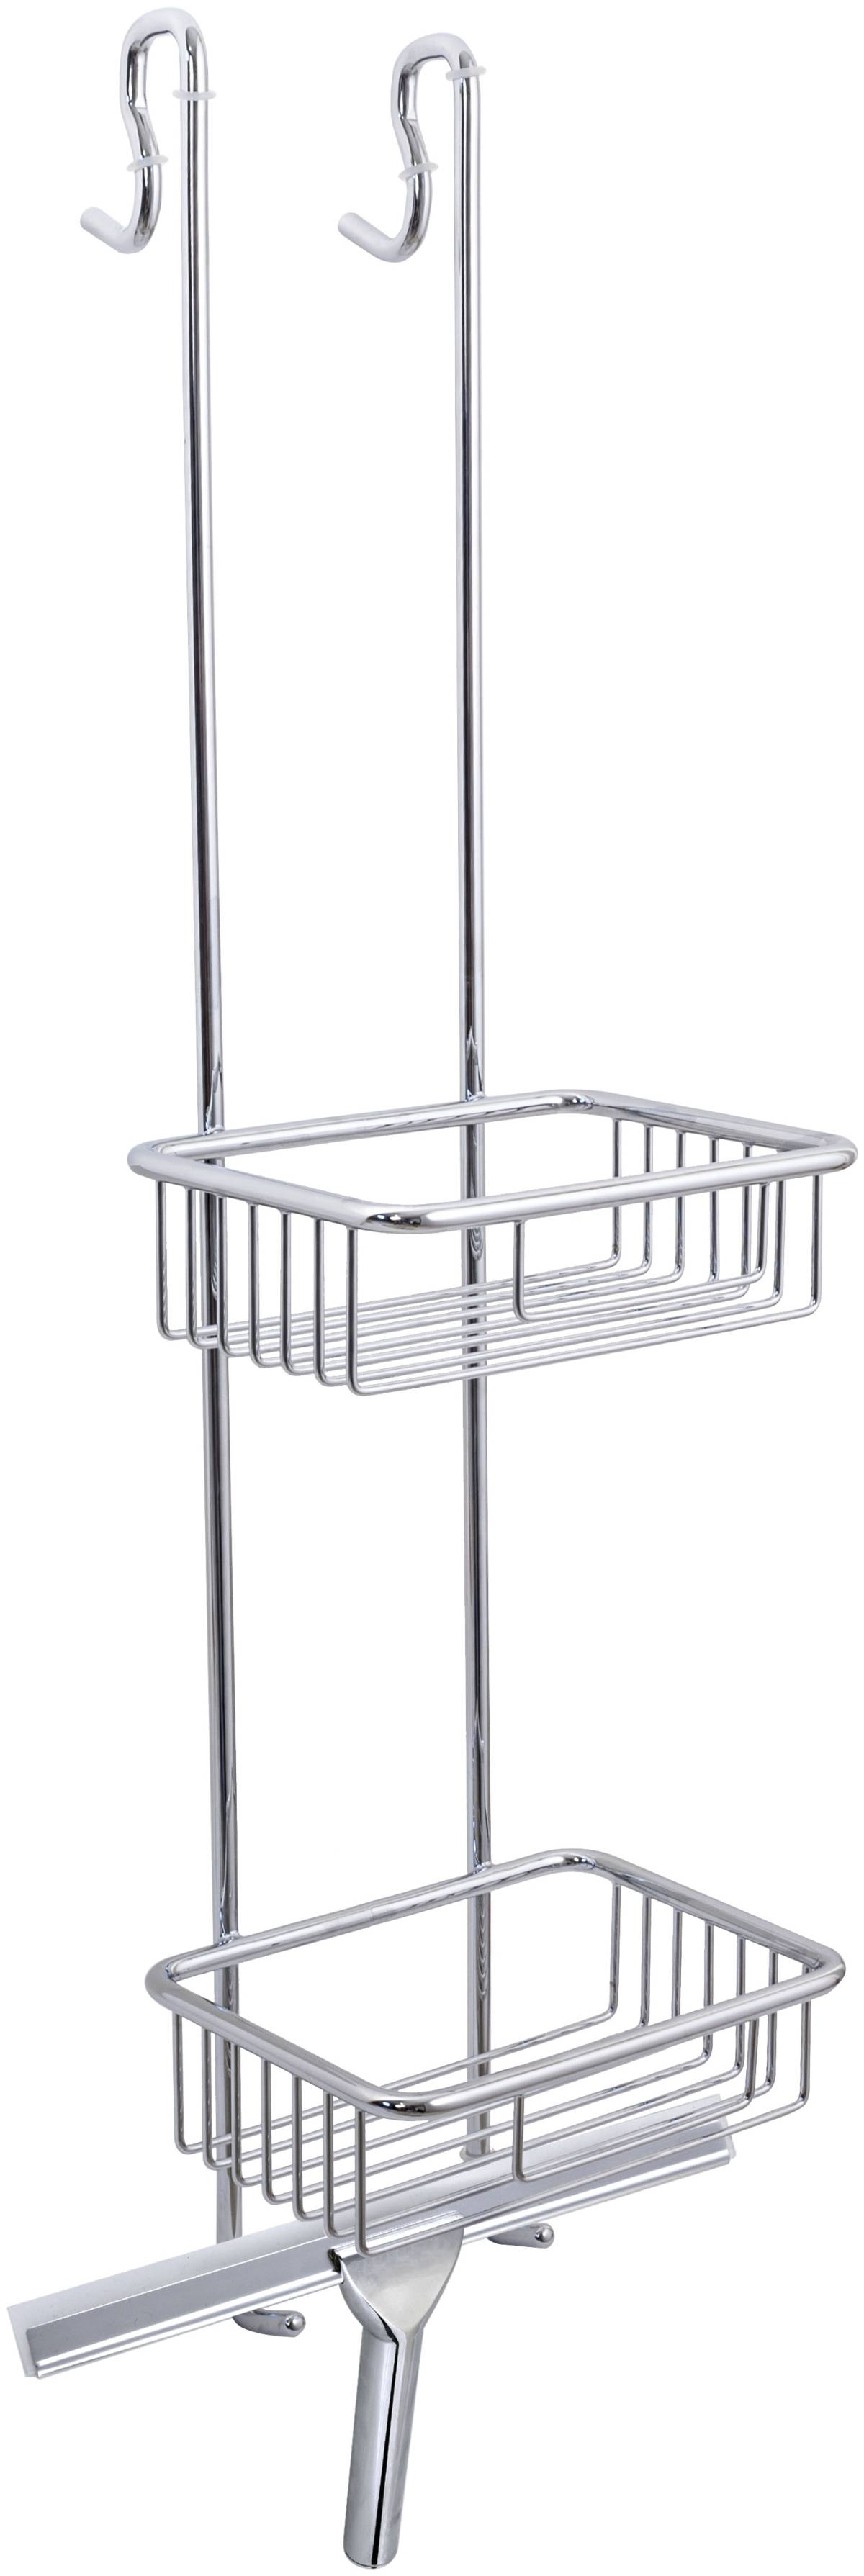 89220 - 89120 wireshelf with 989520 scraper